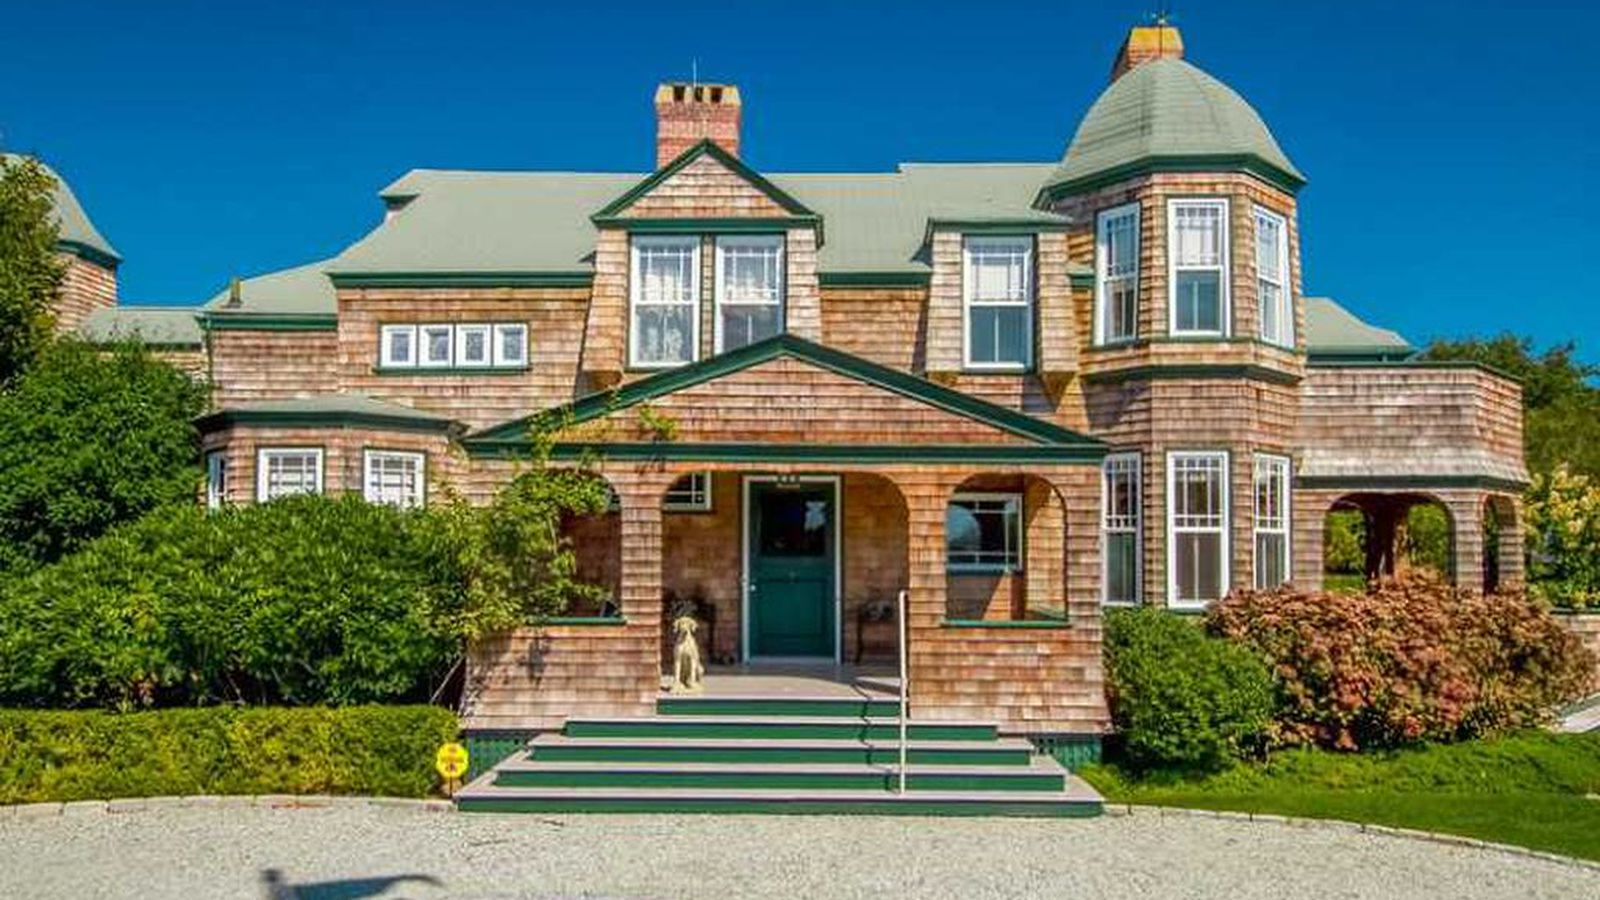 3 shingle style houses in new england for sale right now for New style house photos